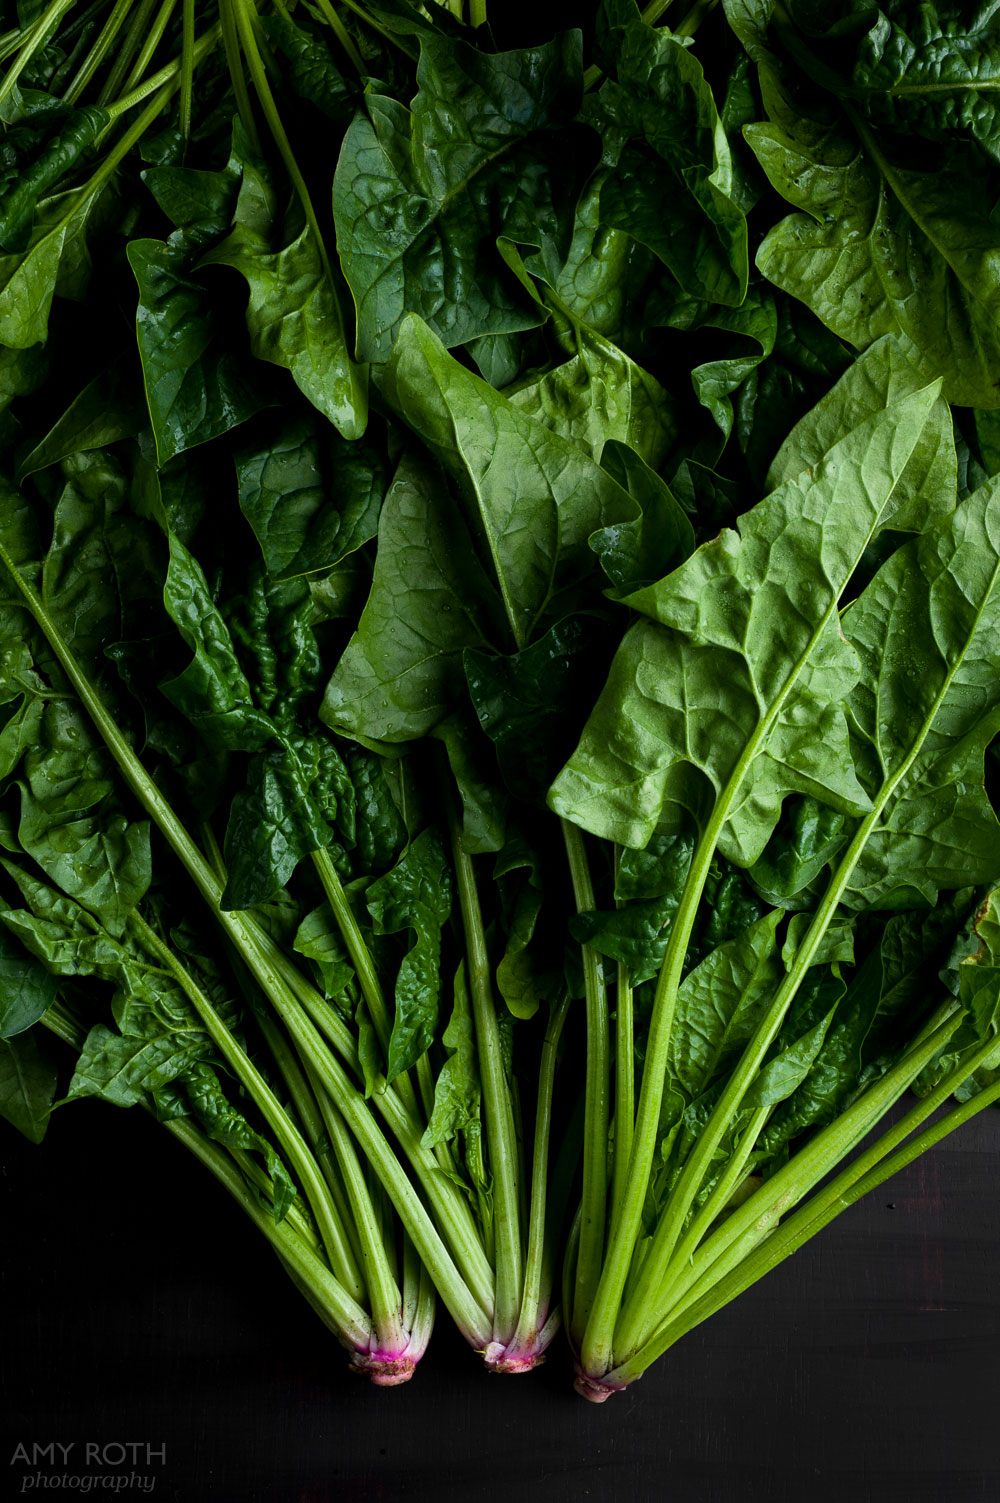 Spinach at Minimally Invasive